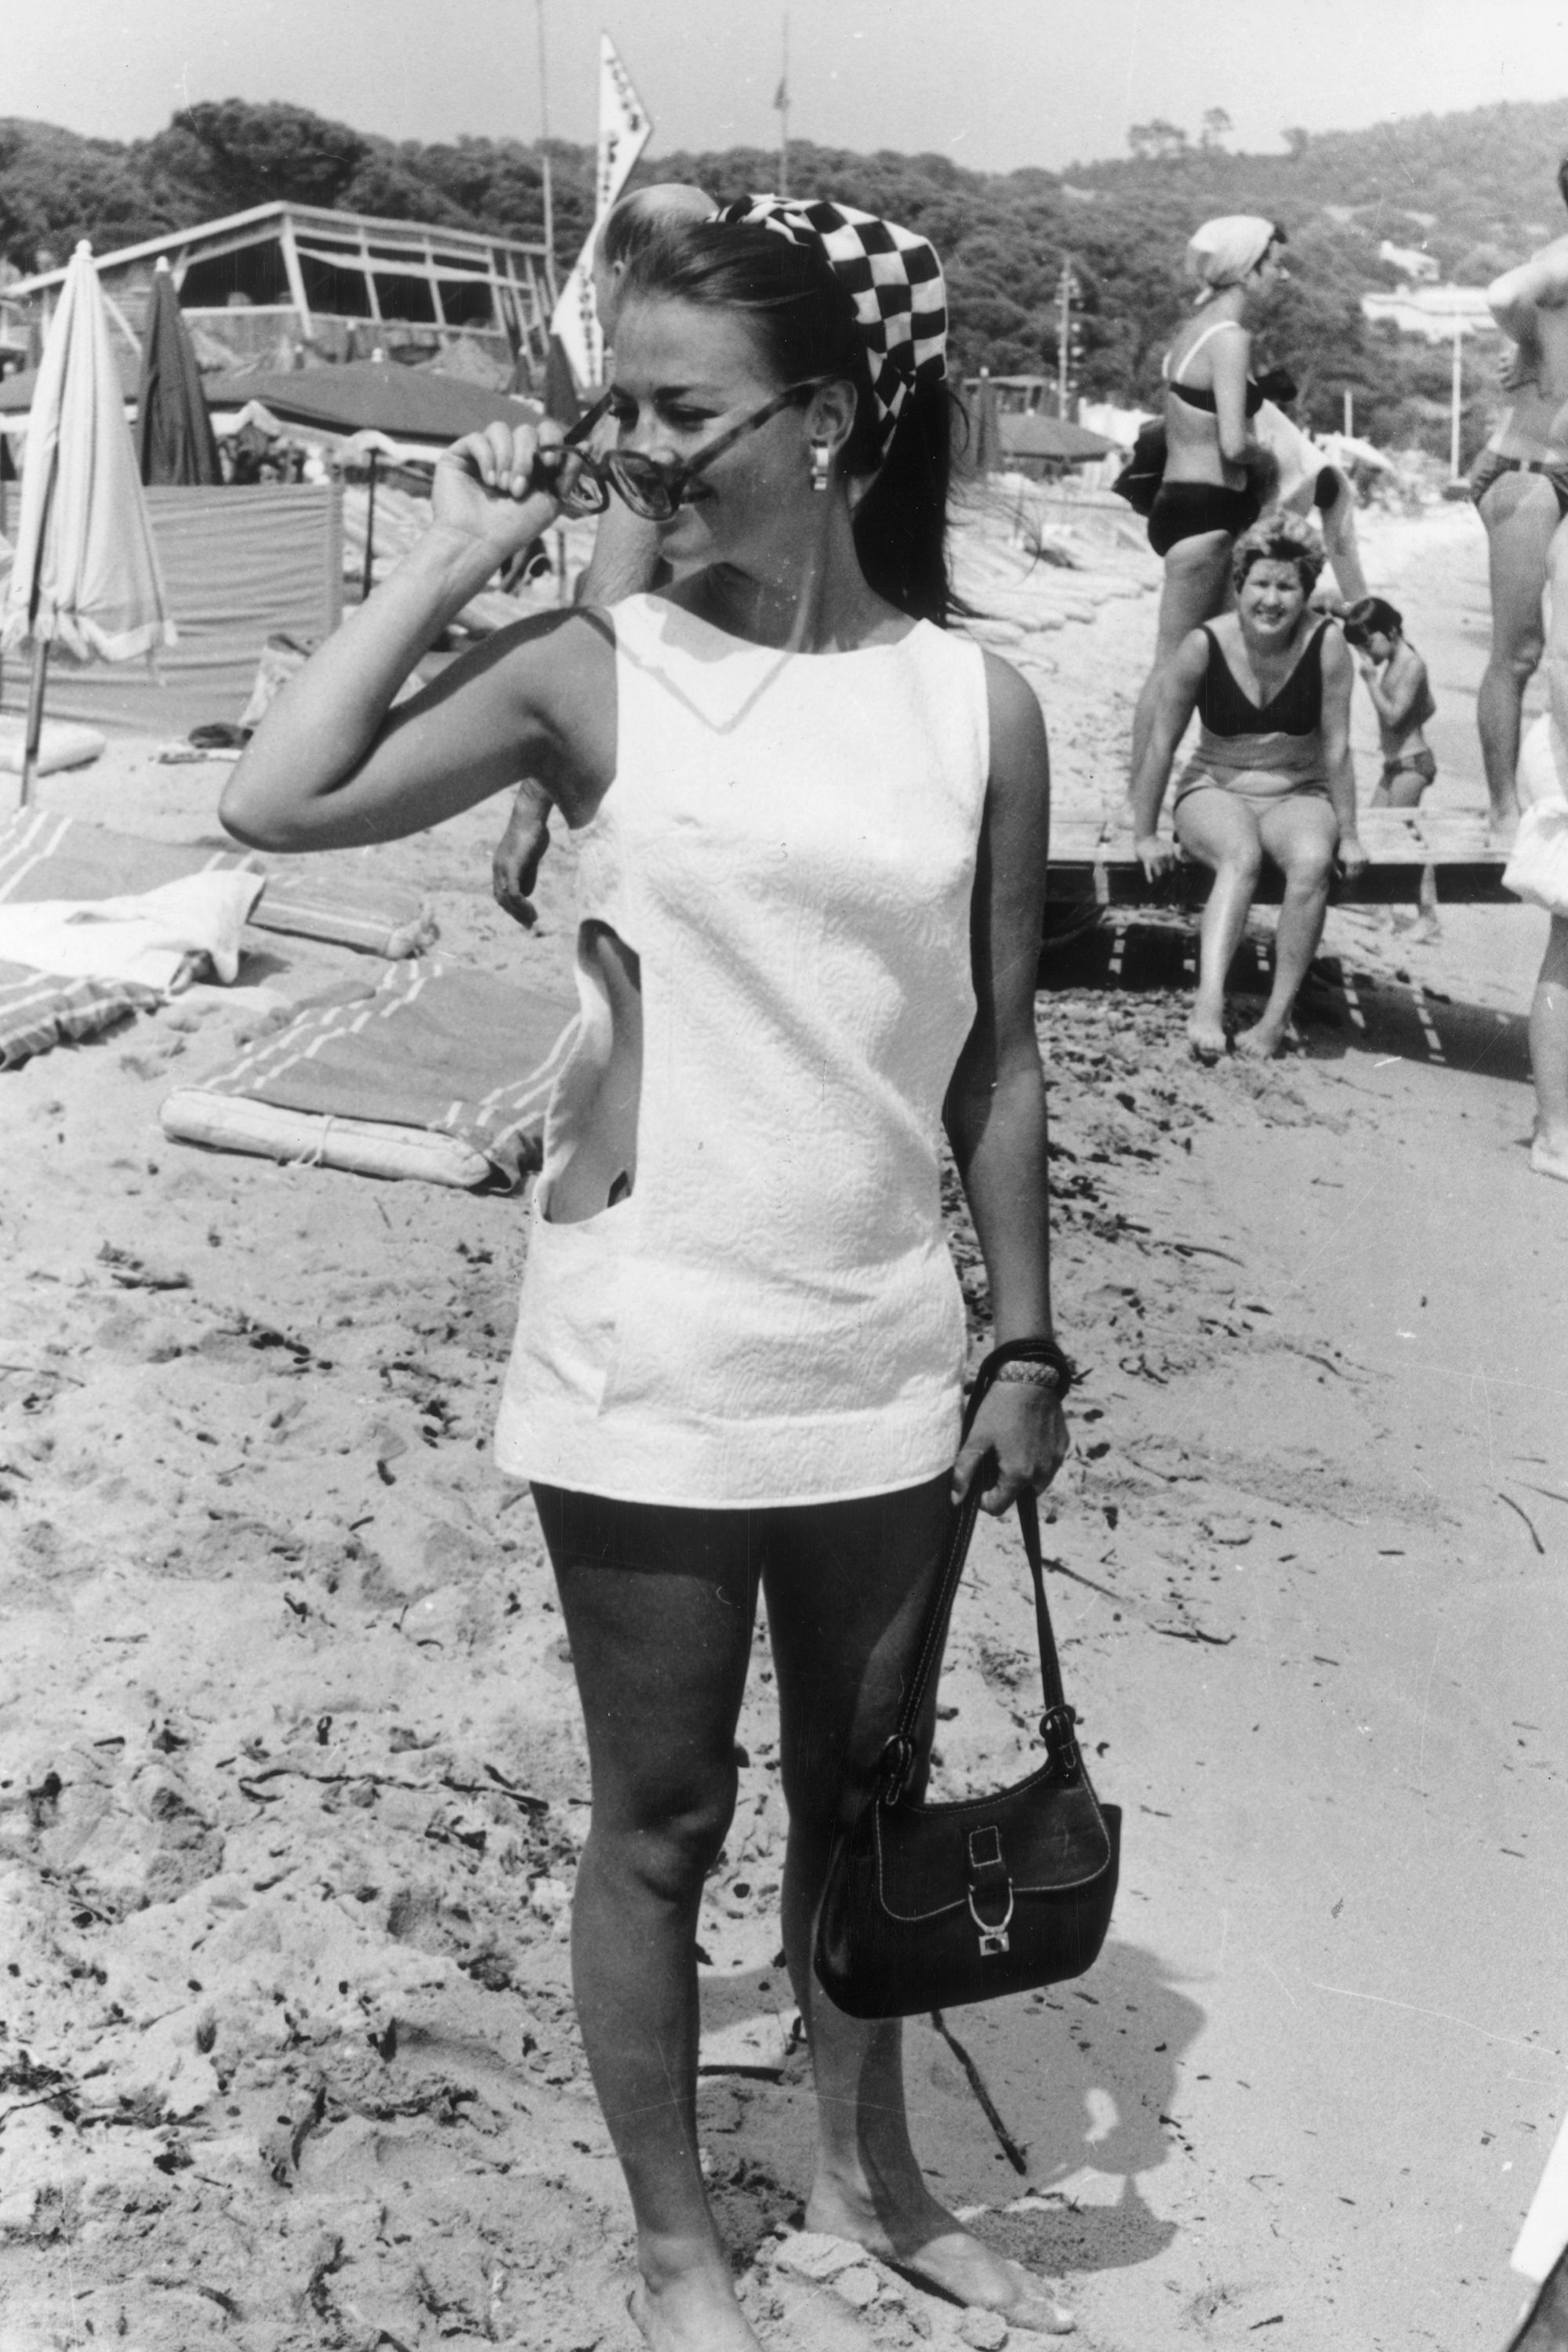 August 1968:  American film star and former child actress, Natalie Wood (1938 - 1981) on the beach in St Tropez.  (Photo by Keystone/Getty Images)